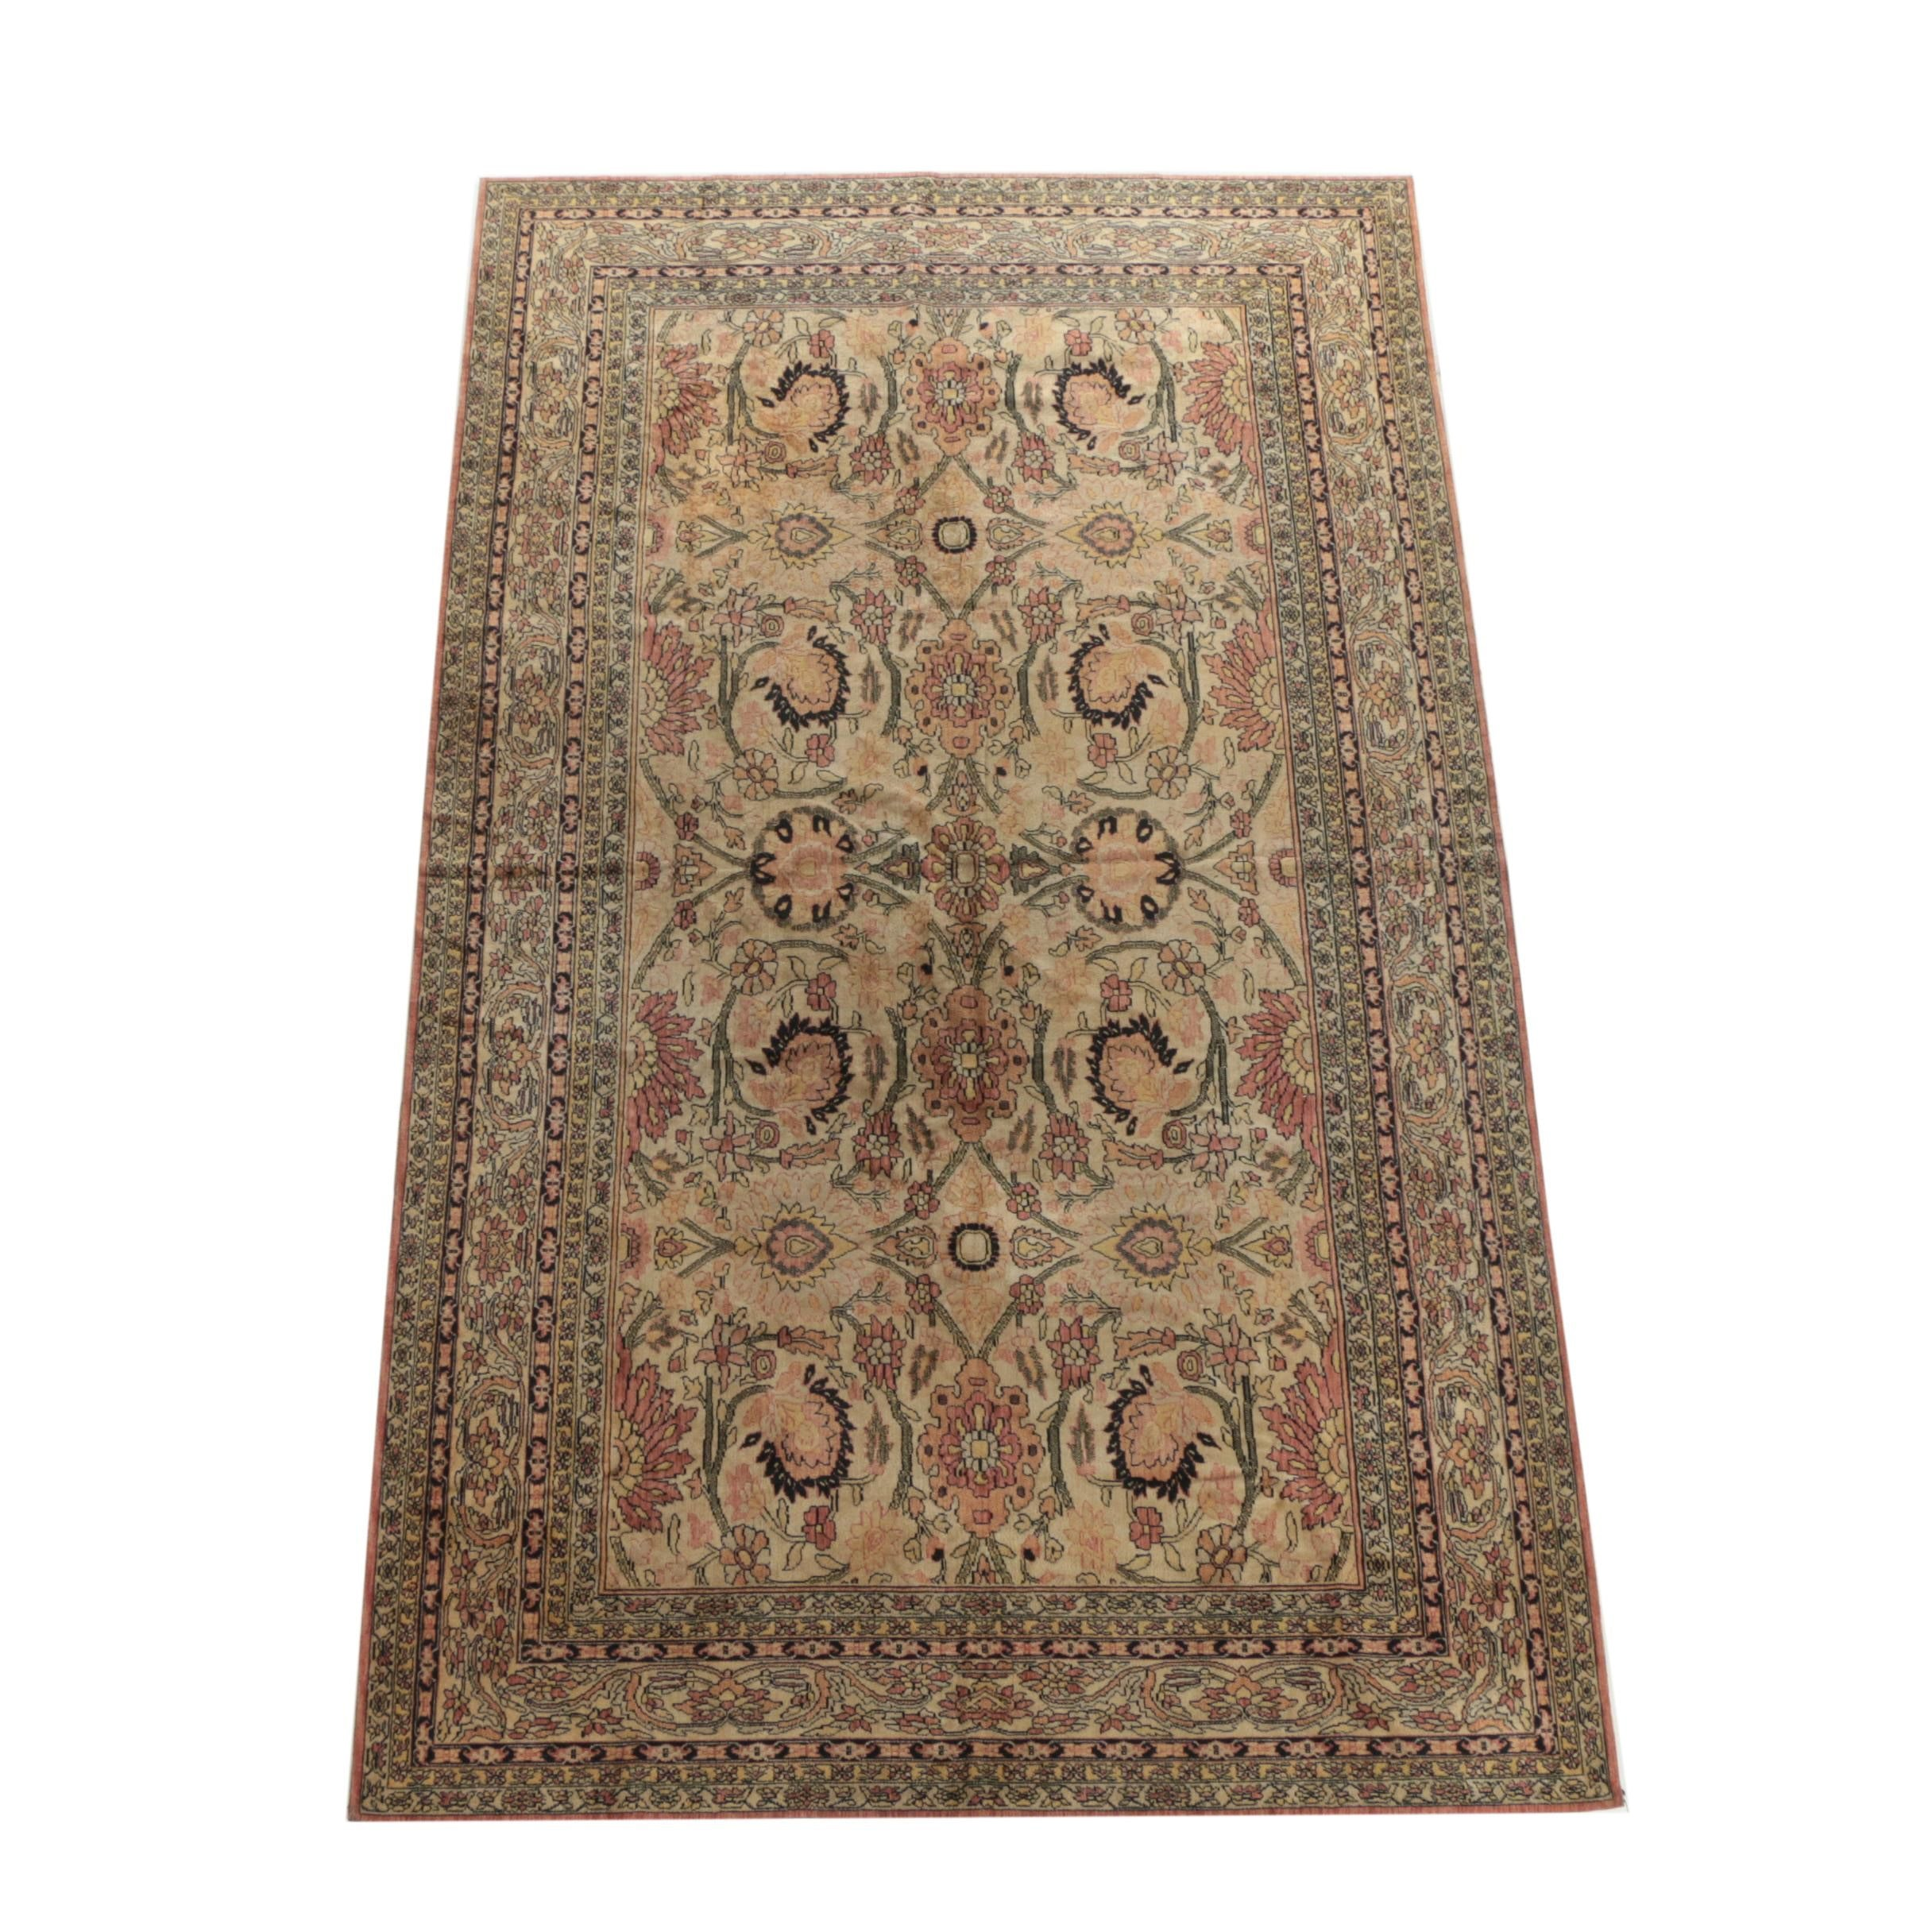 Vintage German Power-Loomed Persian-Style Area Rug by Vorwerk